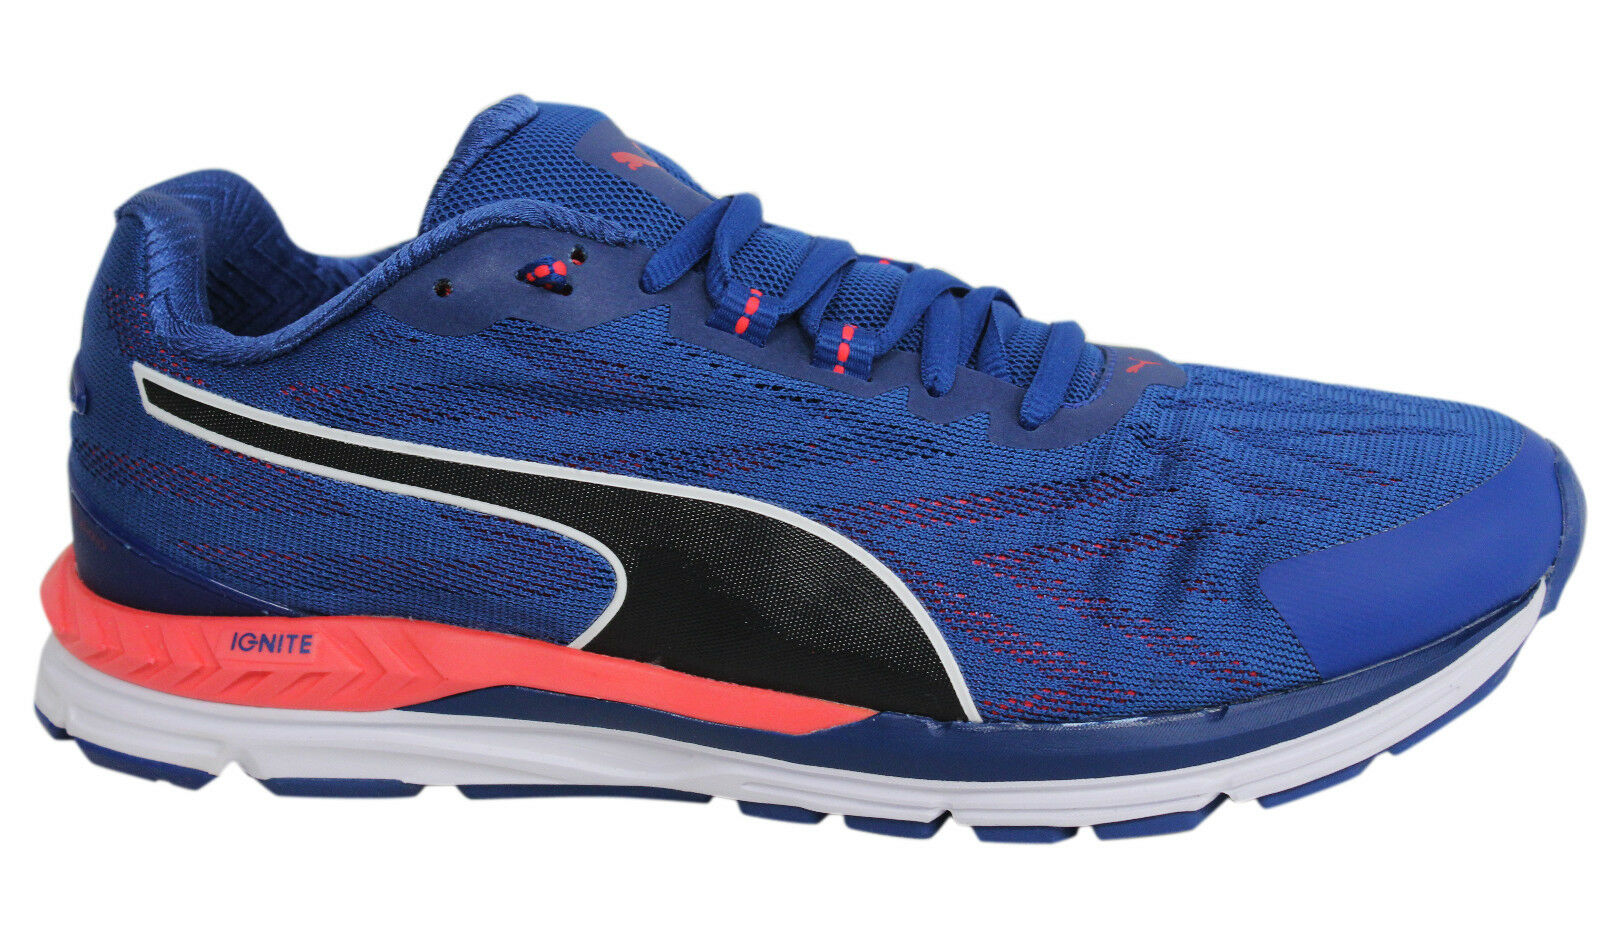 Puma Ignite 2 Speed 600 Lace Up Blue Pink Textile Mens Trainers 189518 01 P5